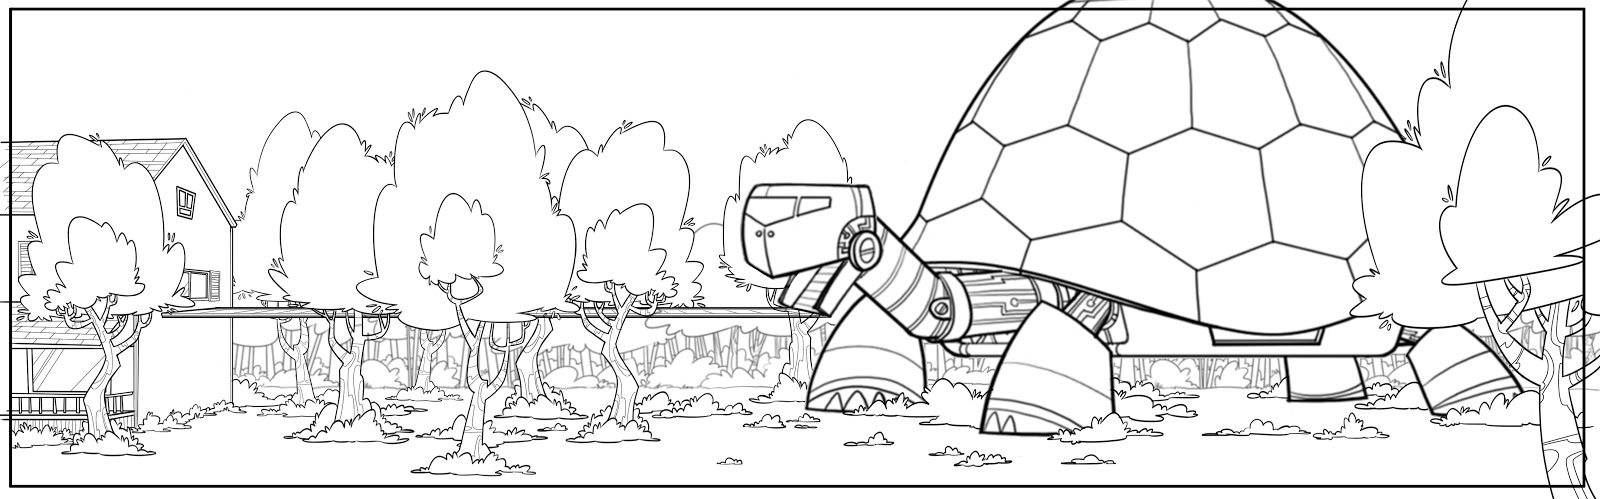 Wild Kratts Tortuga Coloring Page | Coloring Page